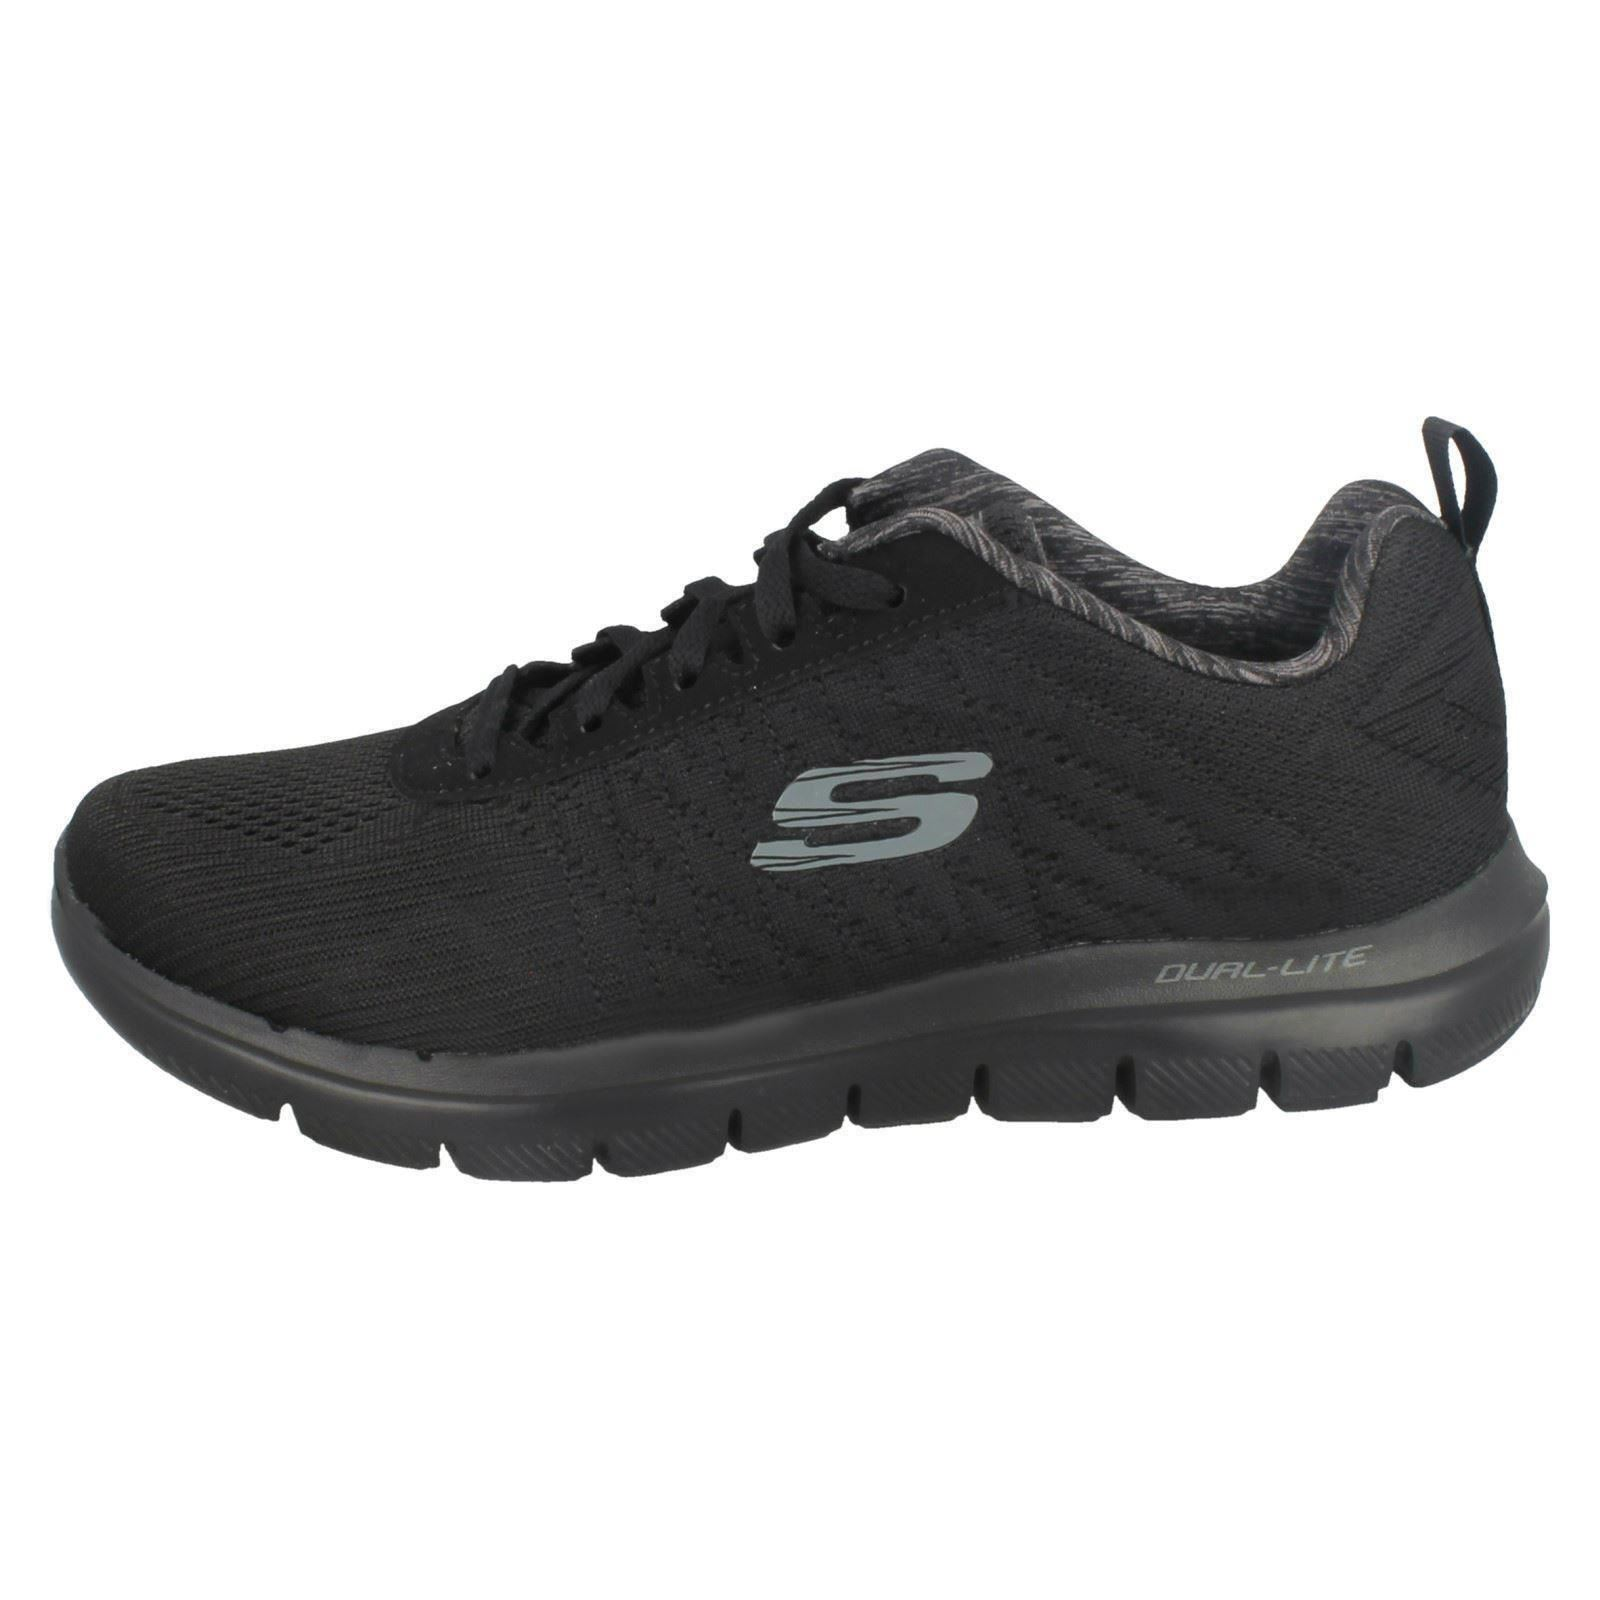 Details about Mens Skechers Air Cooled Trainers The Happs 52185